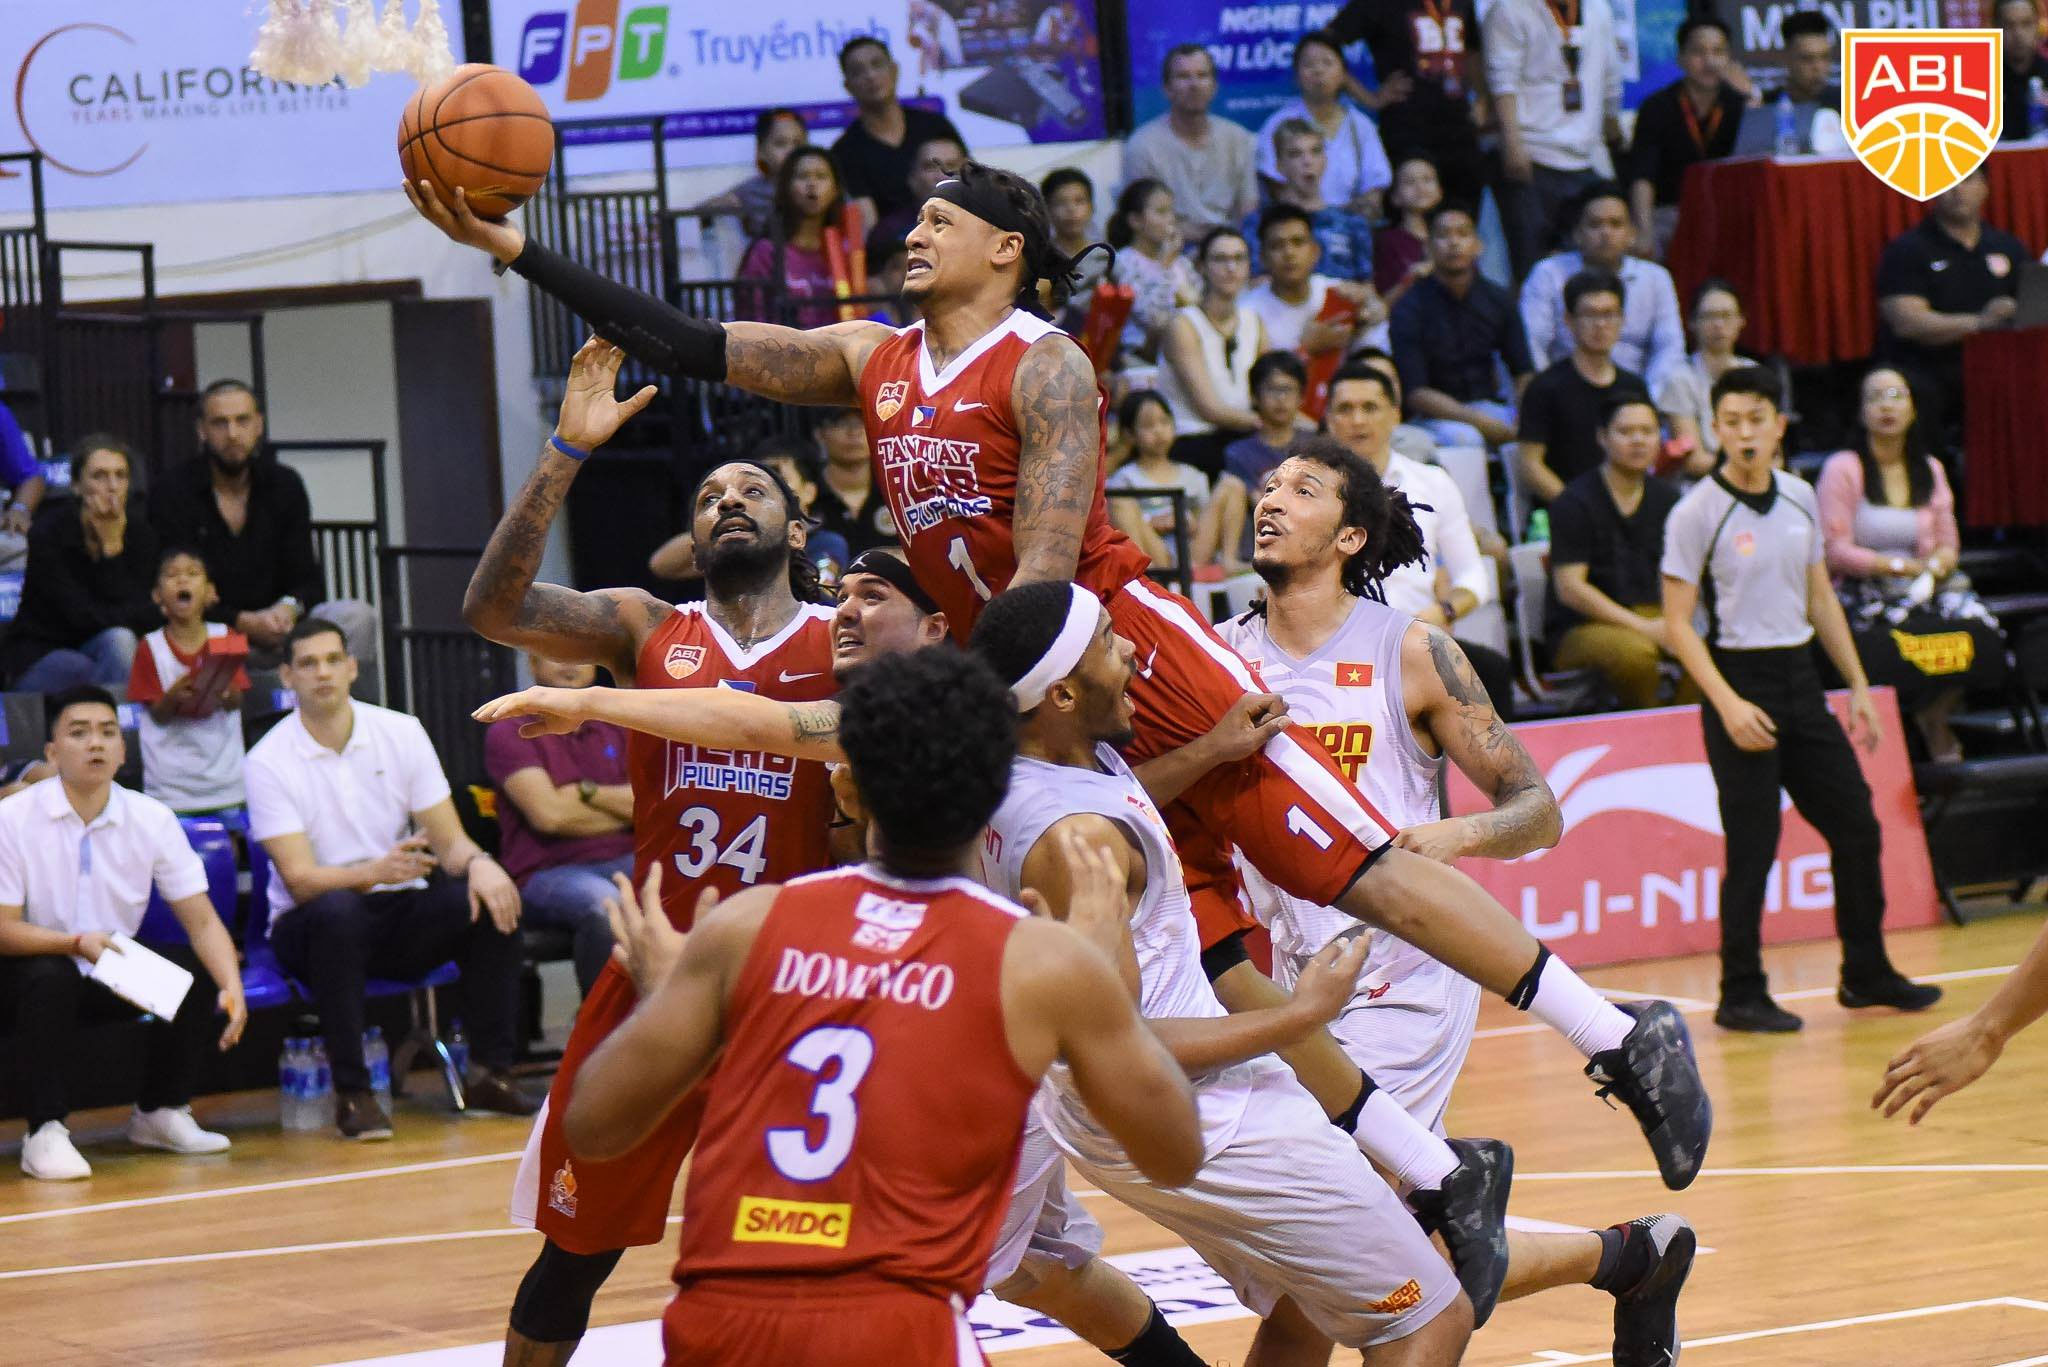 abl-season-8—alab-def-saigon—ray-parks-jr